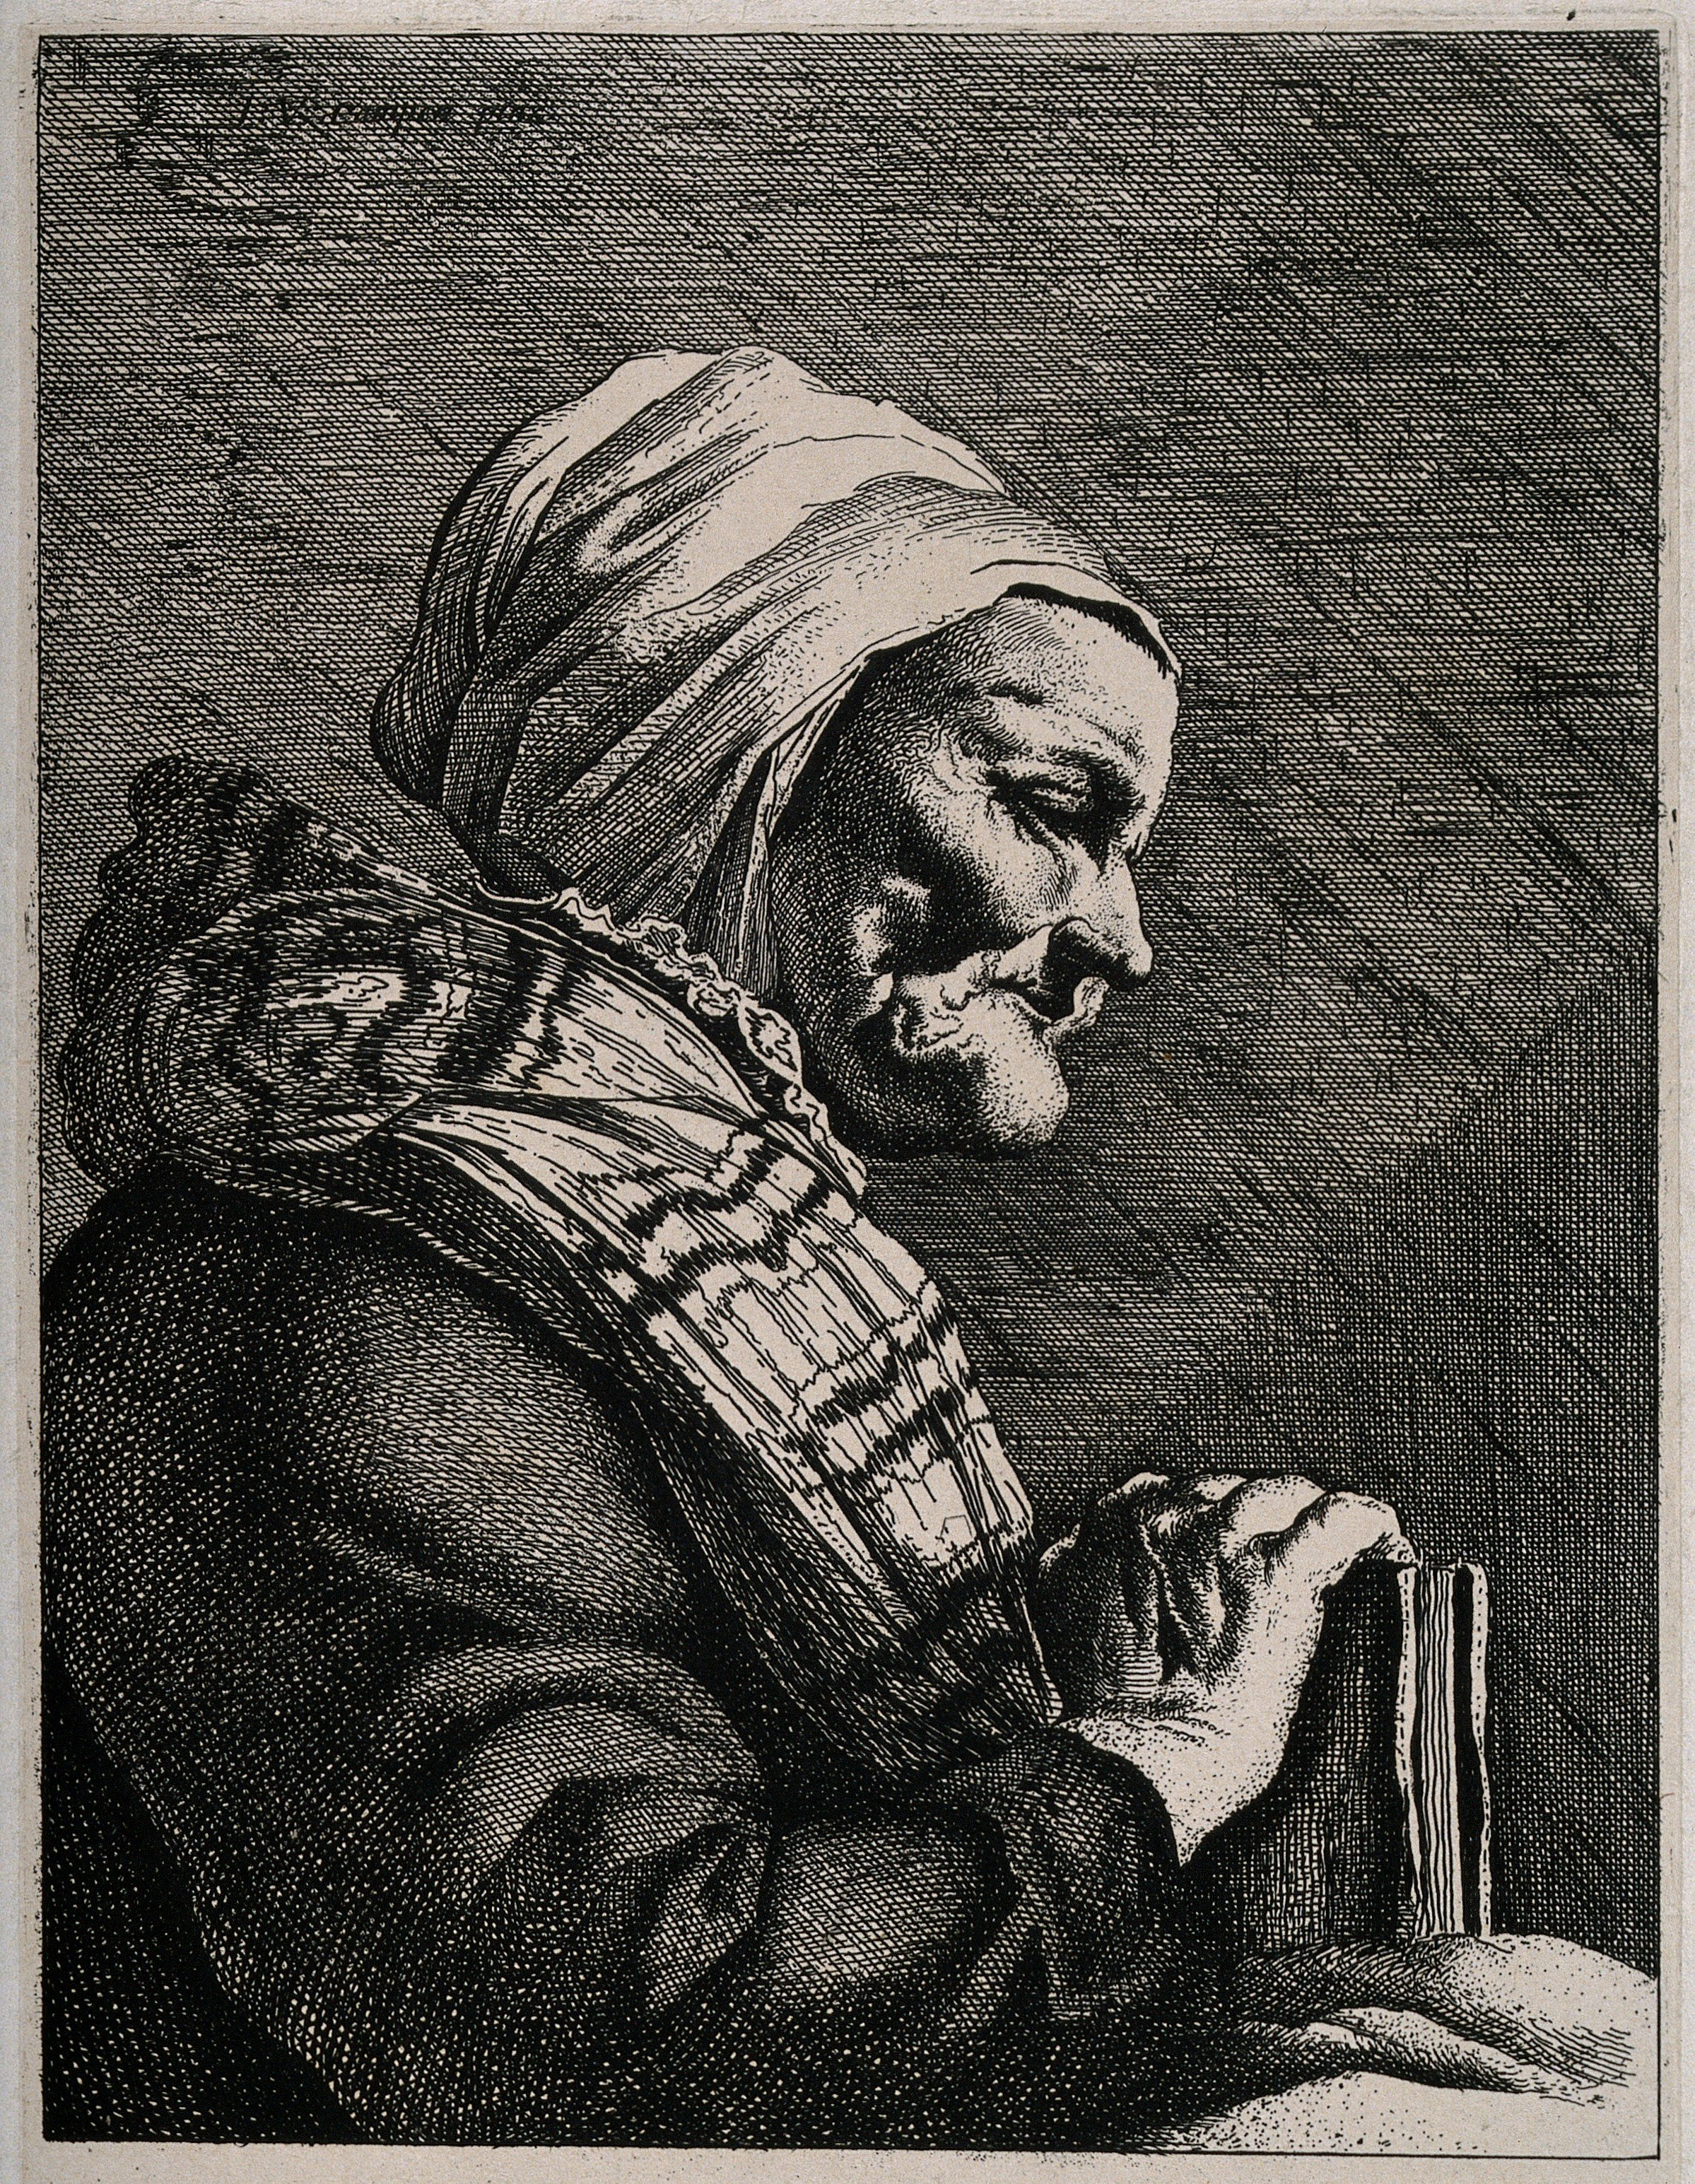 A_profile_of_an_old_blind_woman_holding_a_book._Line_engravi_Wellcome_V0015901